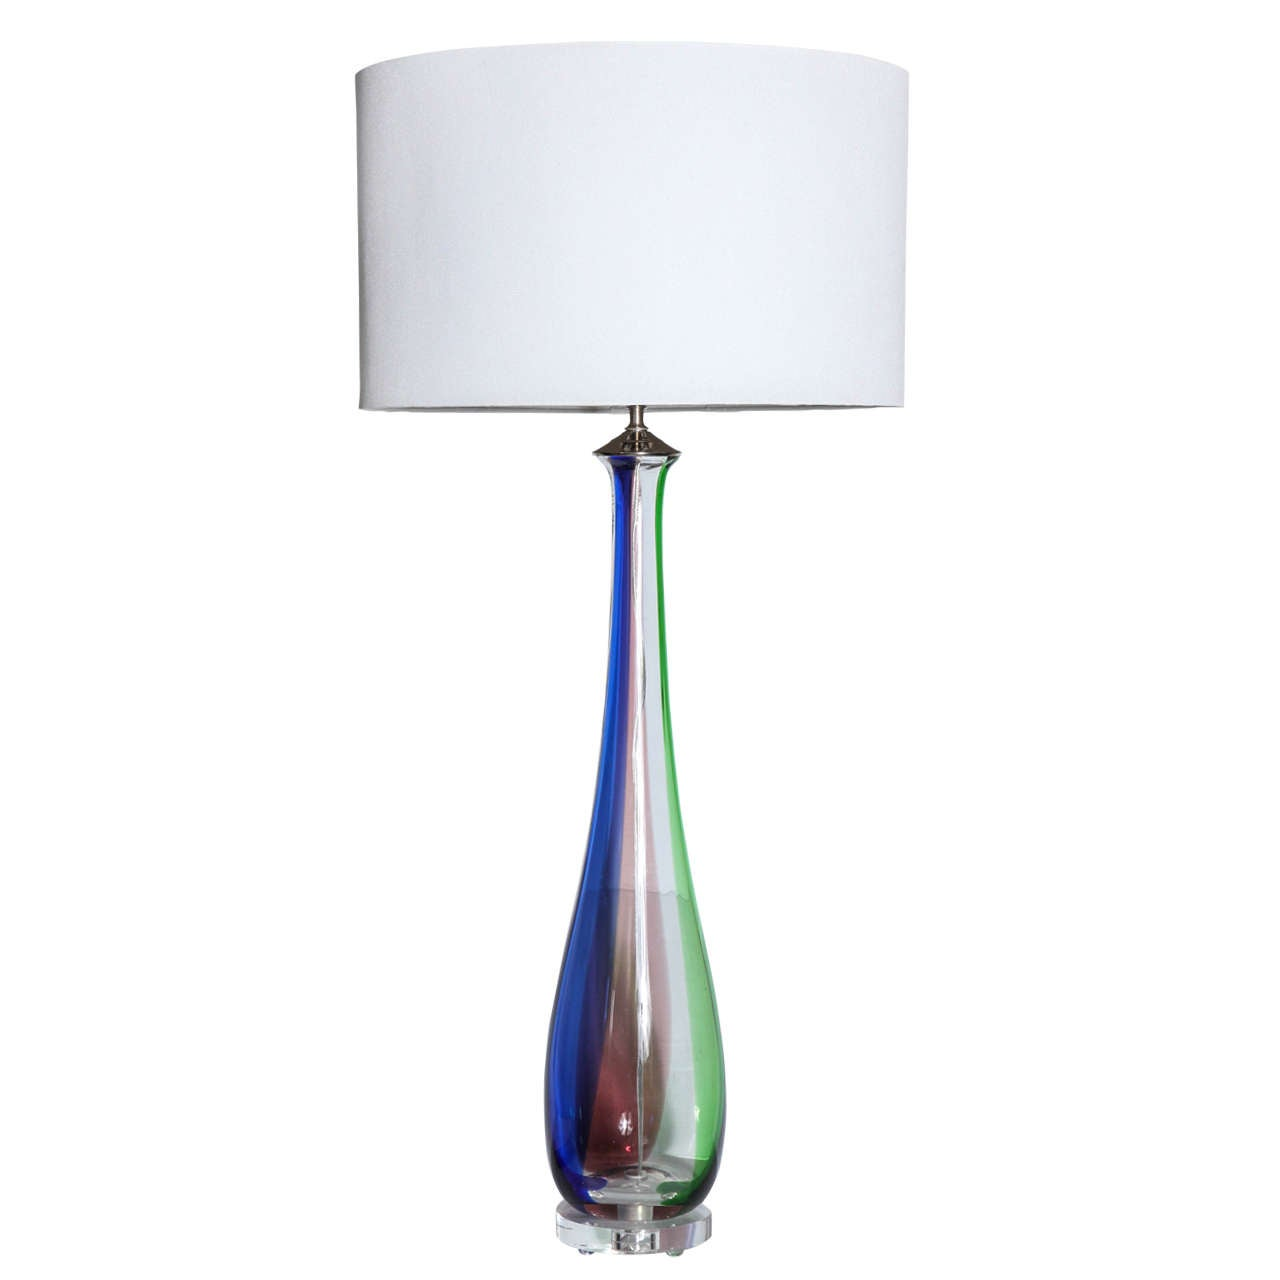 tall slim murano glass table lamps for sale at 1stdibs. Black Bedroom Furniture Sets. Home Design Ideas